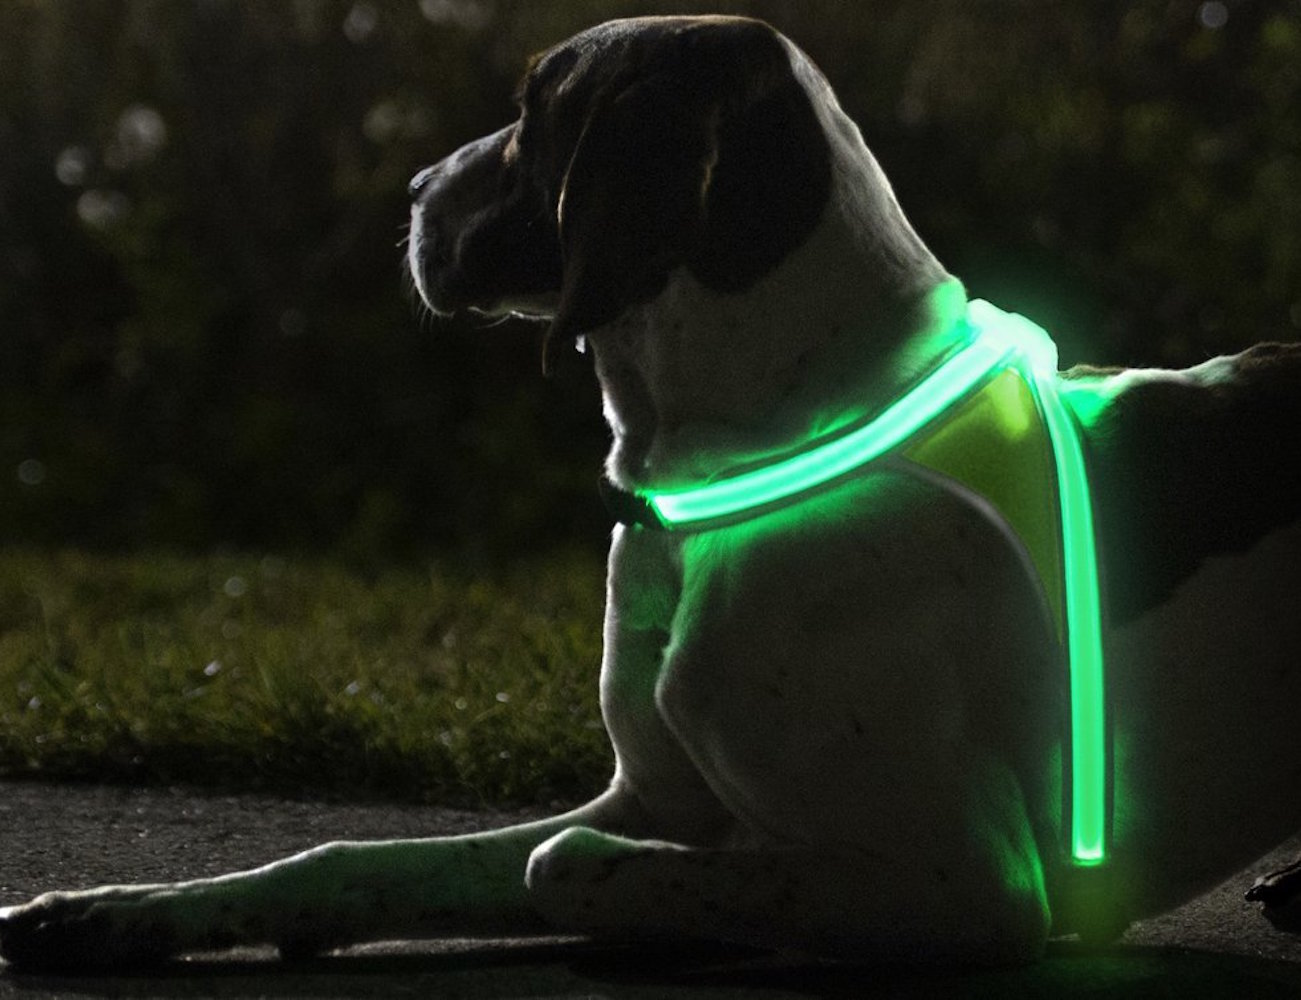 noxgear-lighthound-illuminated-dog-vest-01